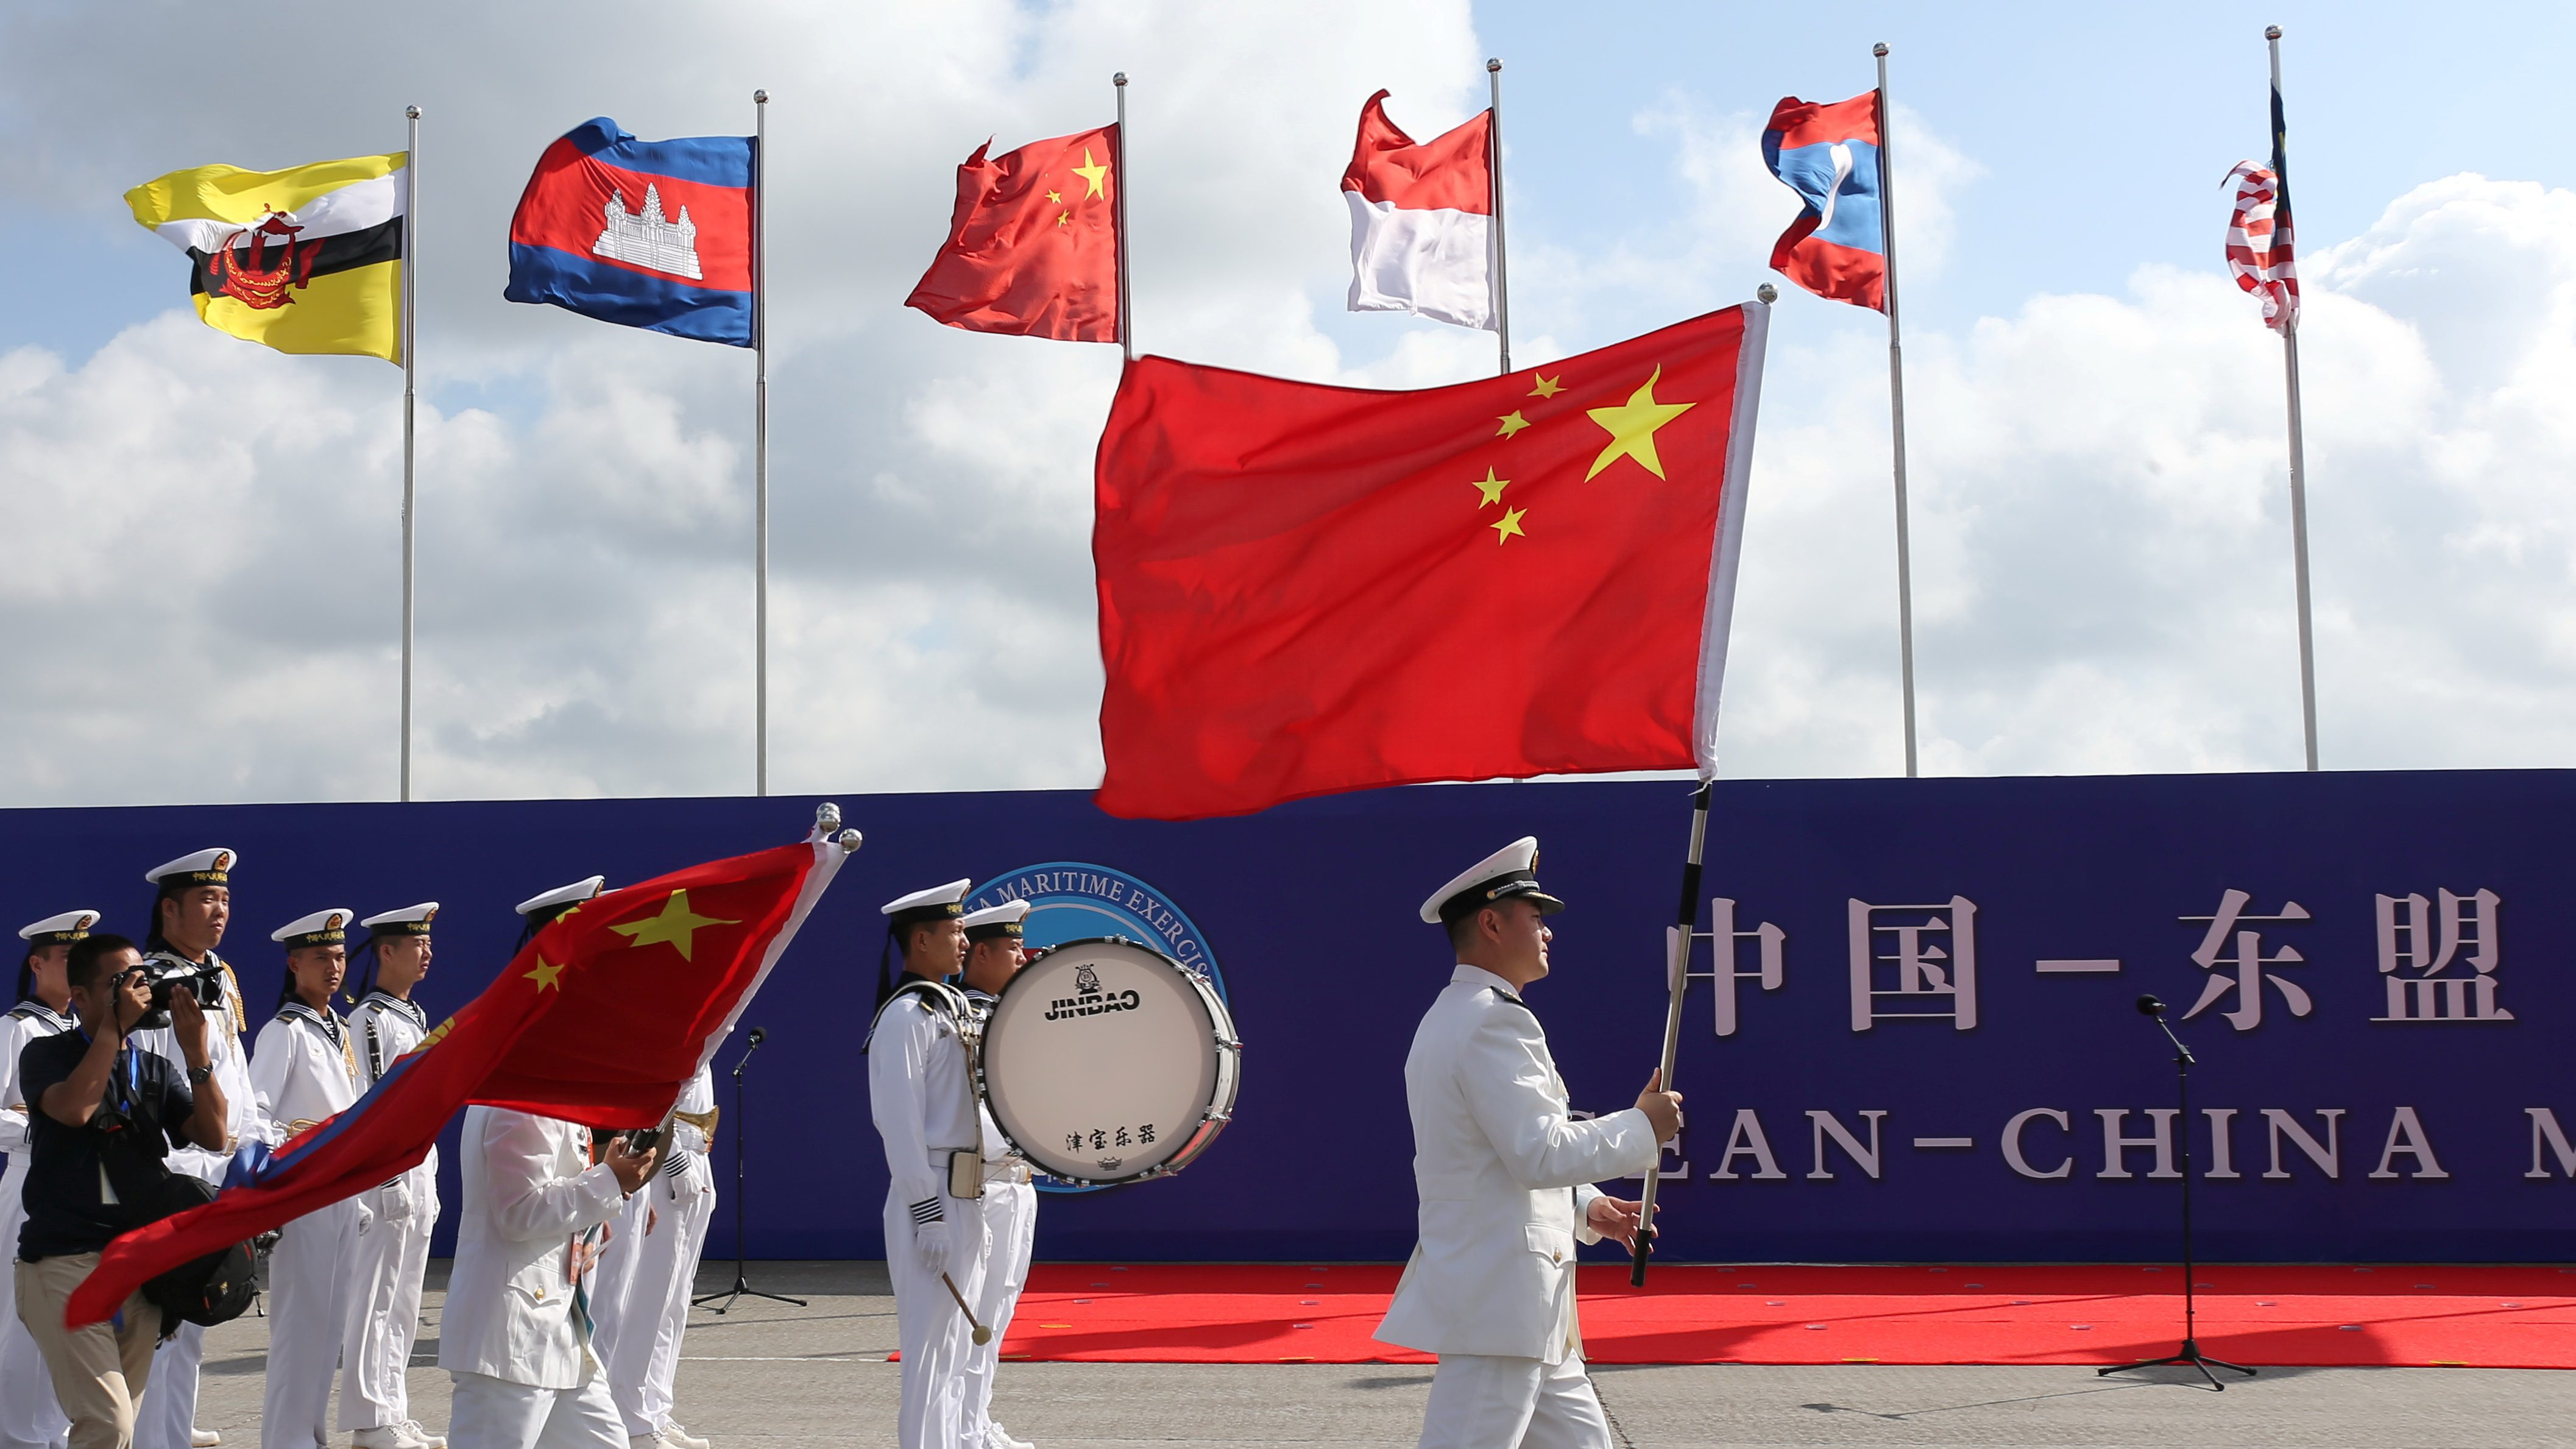 Members of the Chinese People's Liberation Army (PLA) and navy hold Chinese flags during the opening ceremony of the first China-ASEAN Maritime Exercise in Zhanjiang.